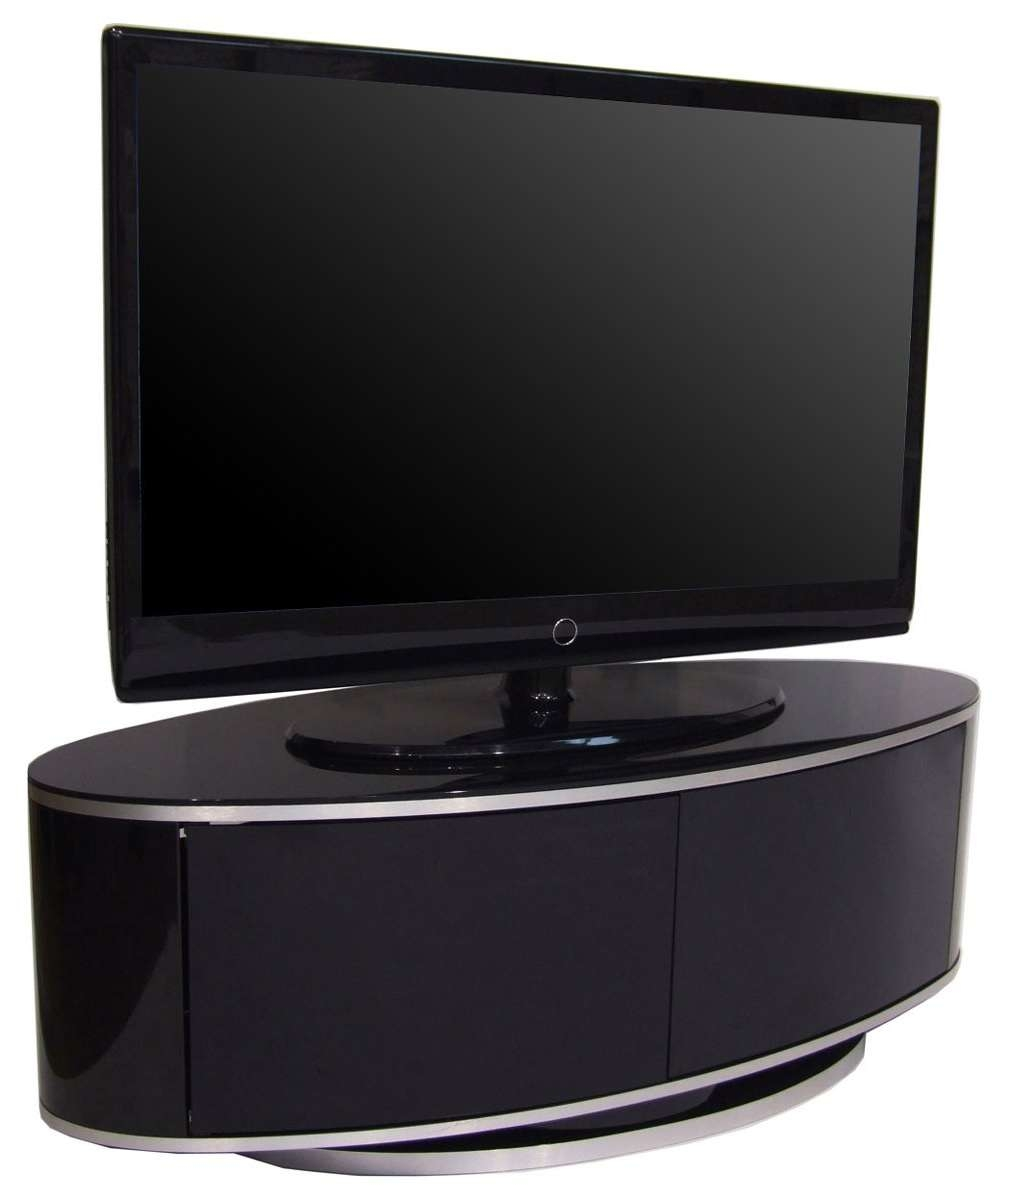 Luna High Gloss Black Oval Tv Cabinet Inside White Gloss Oval Tv Stands (View 14 of 20)